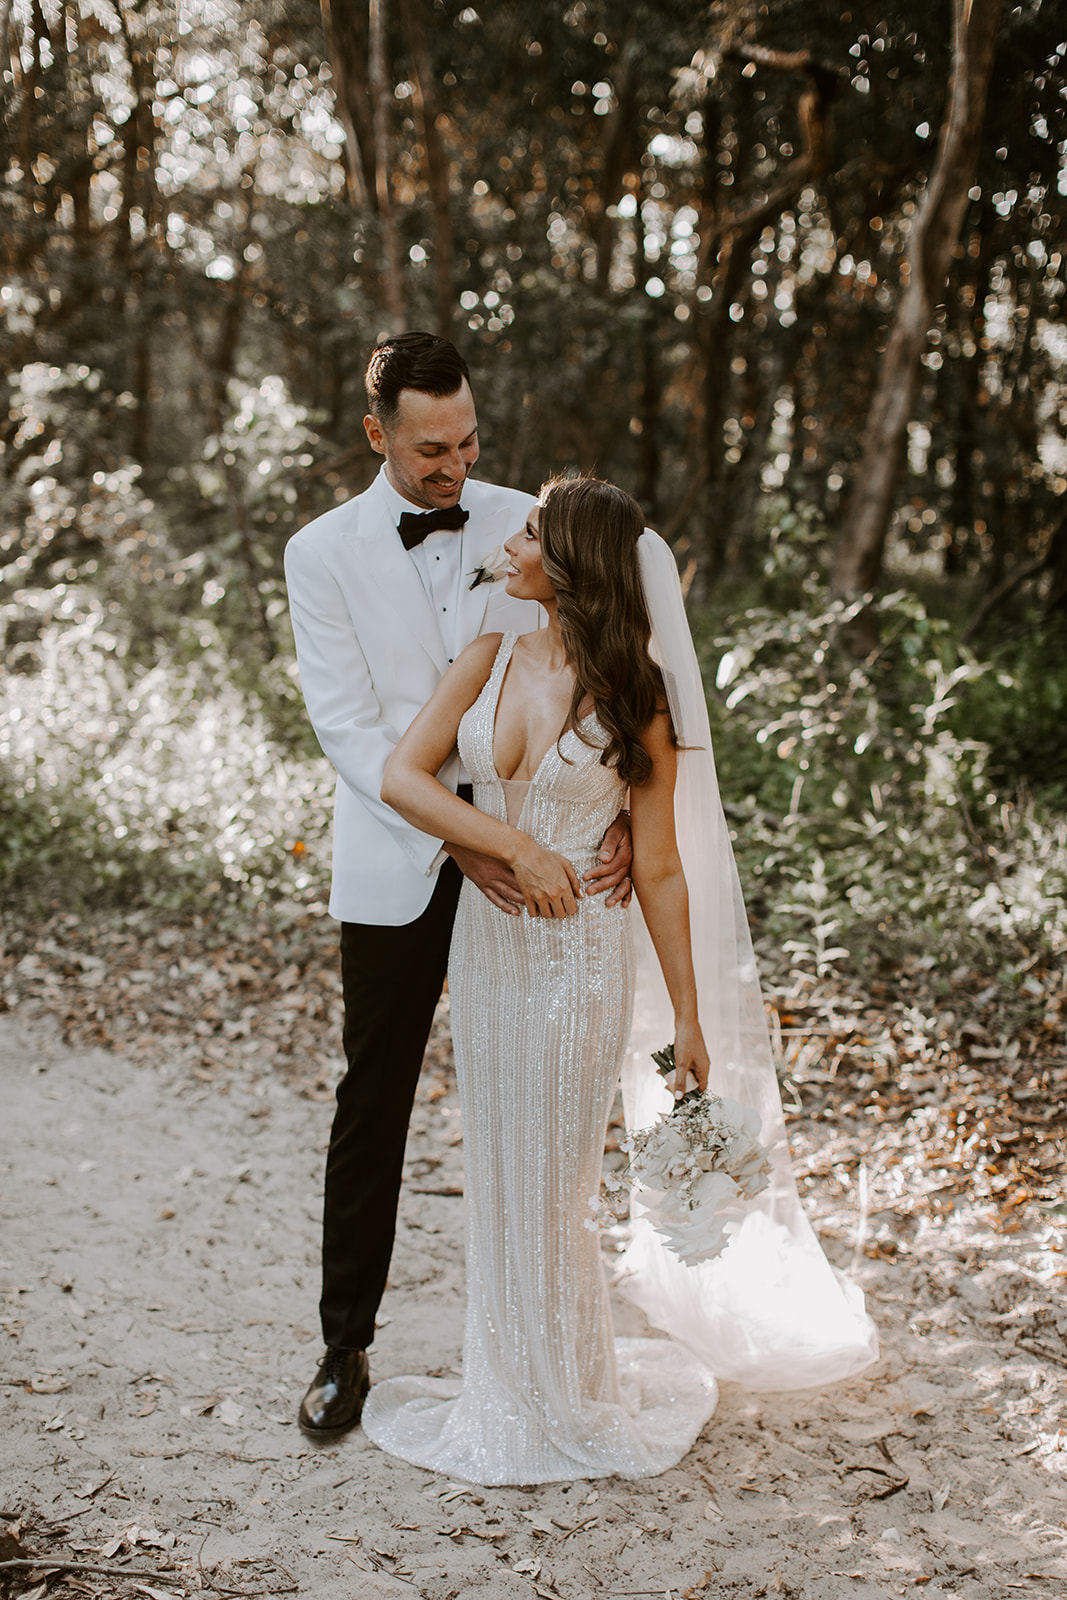 Bloodwood Botanica | Bride and groom